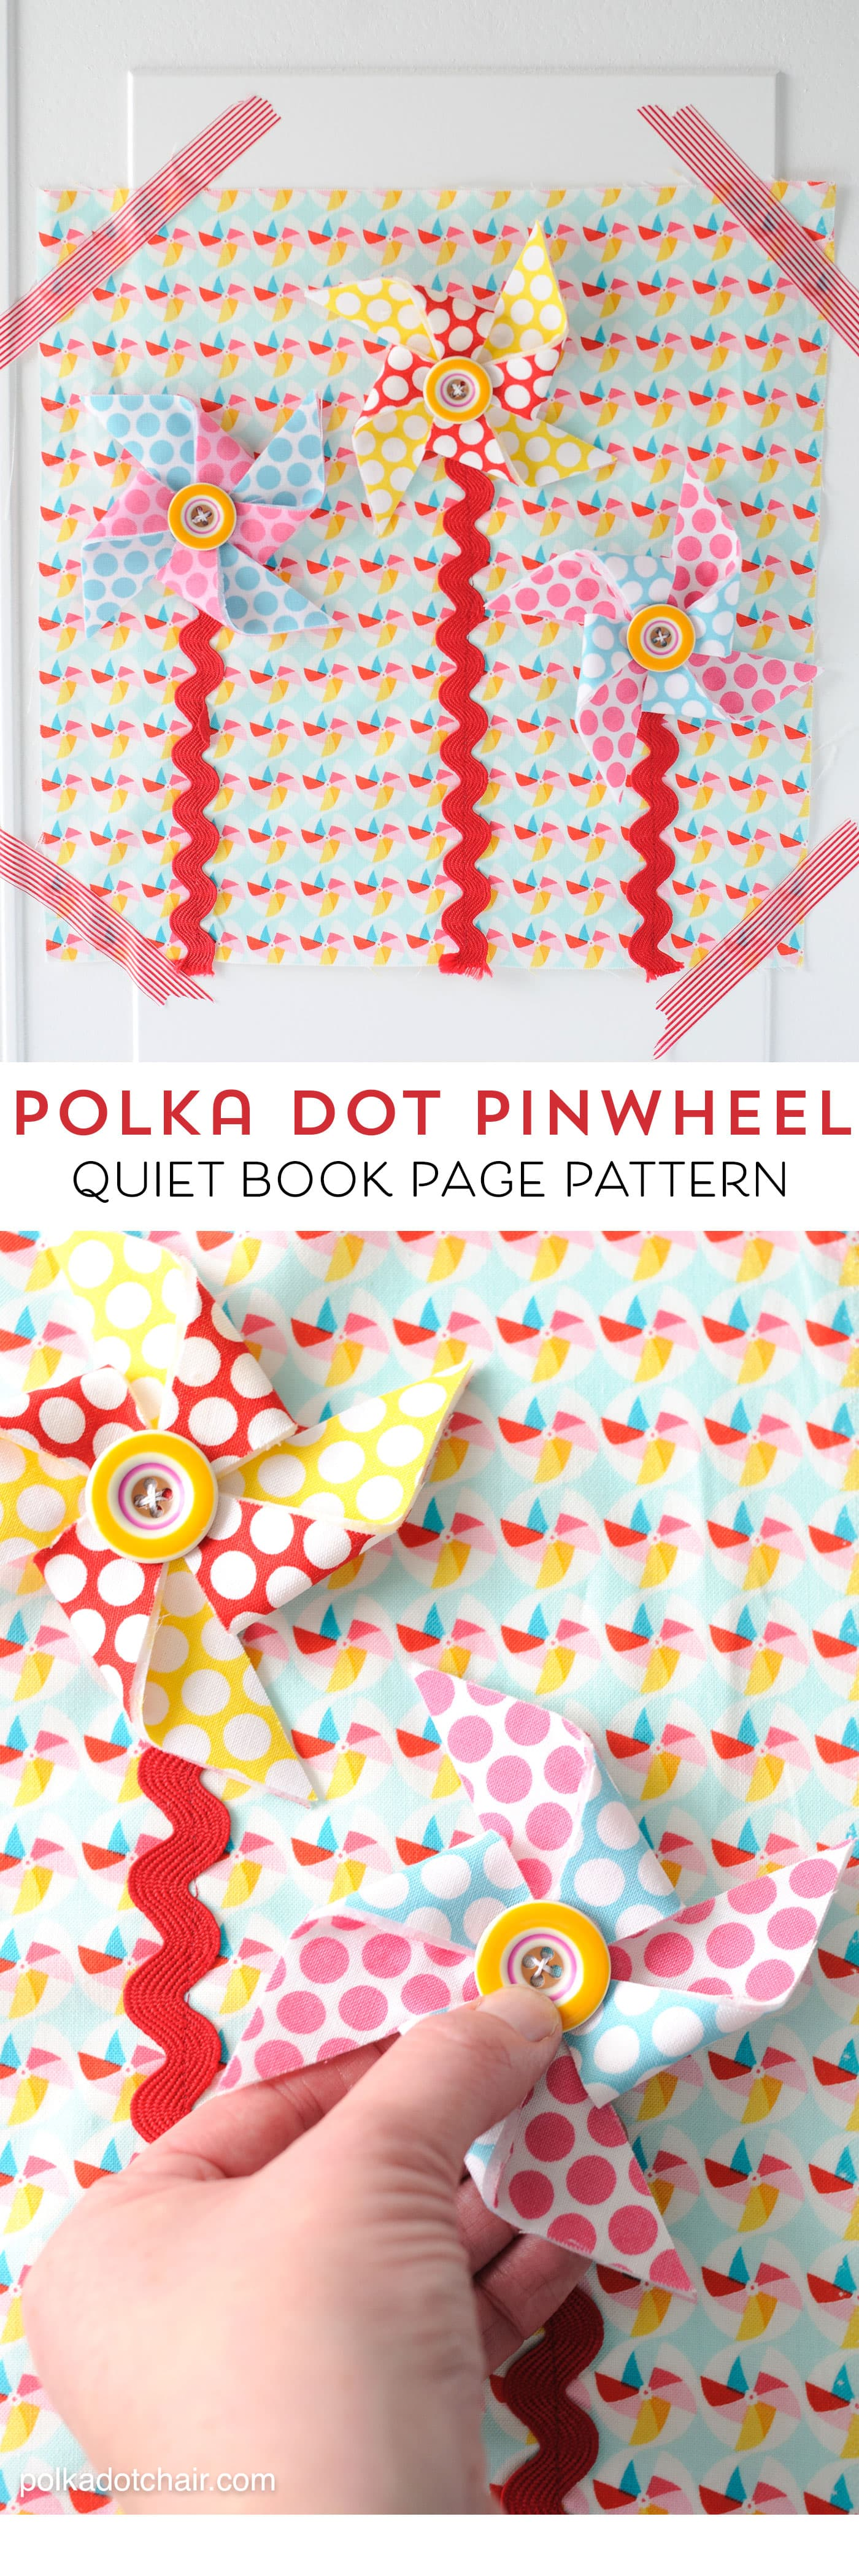 Pinwheel Quiet Book Page Sewing Pattern  The Polka Dot Chair